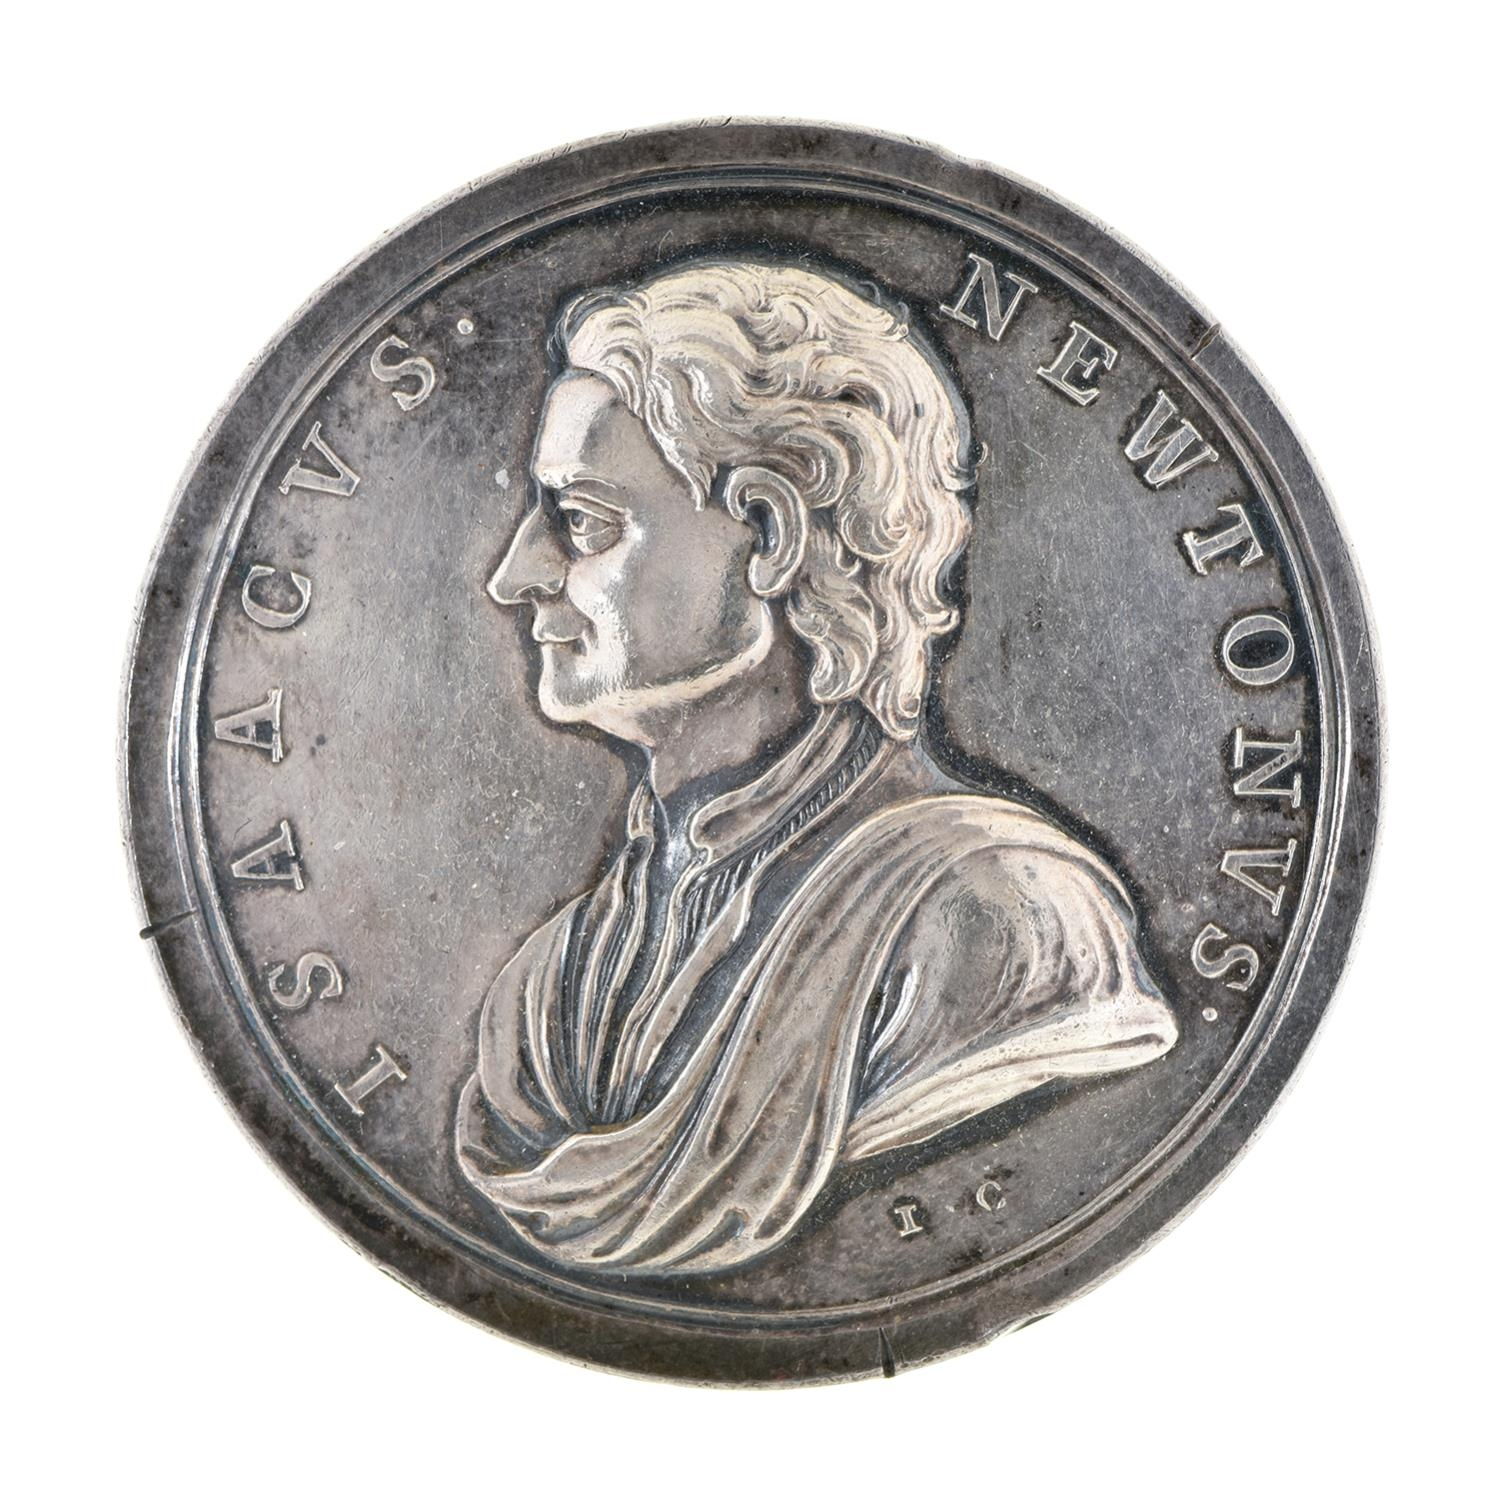 Death of Isaac Newton commemorative silver medal, 1727, struck 1740 by J Croker (Eimer 504) 51mm,